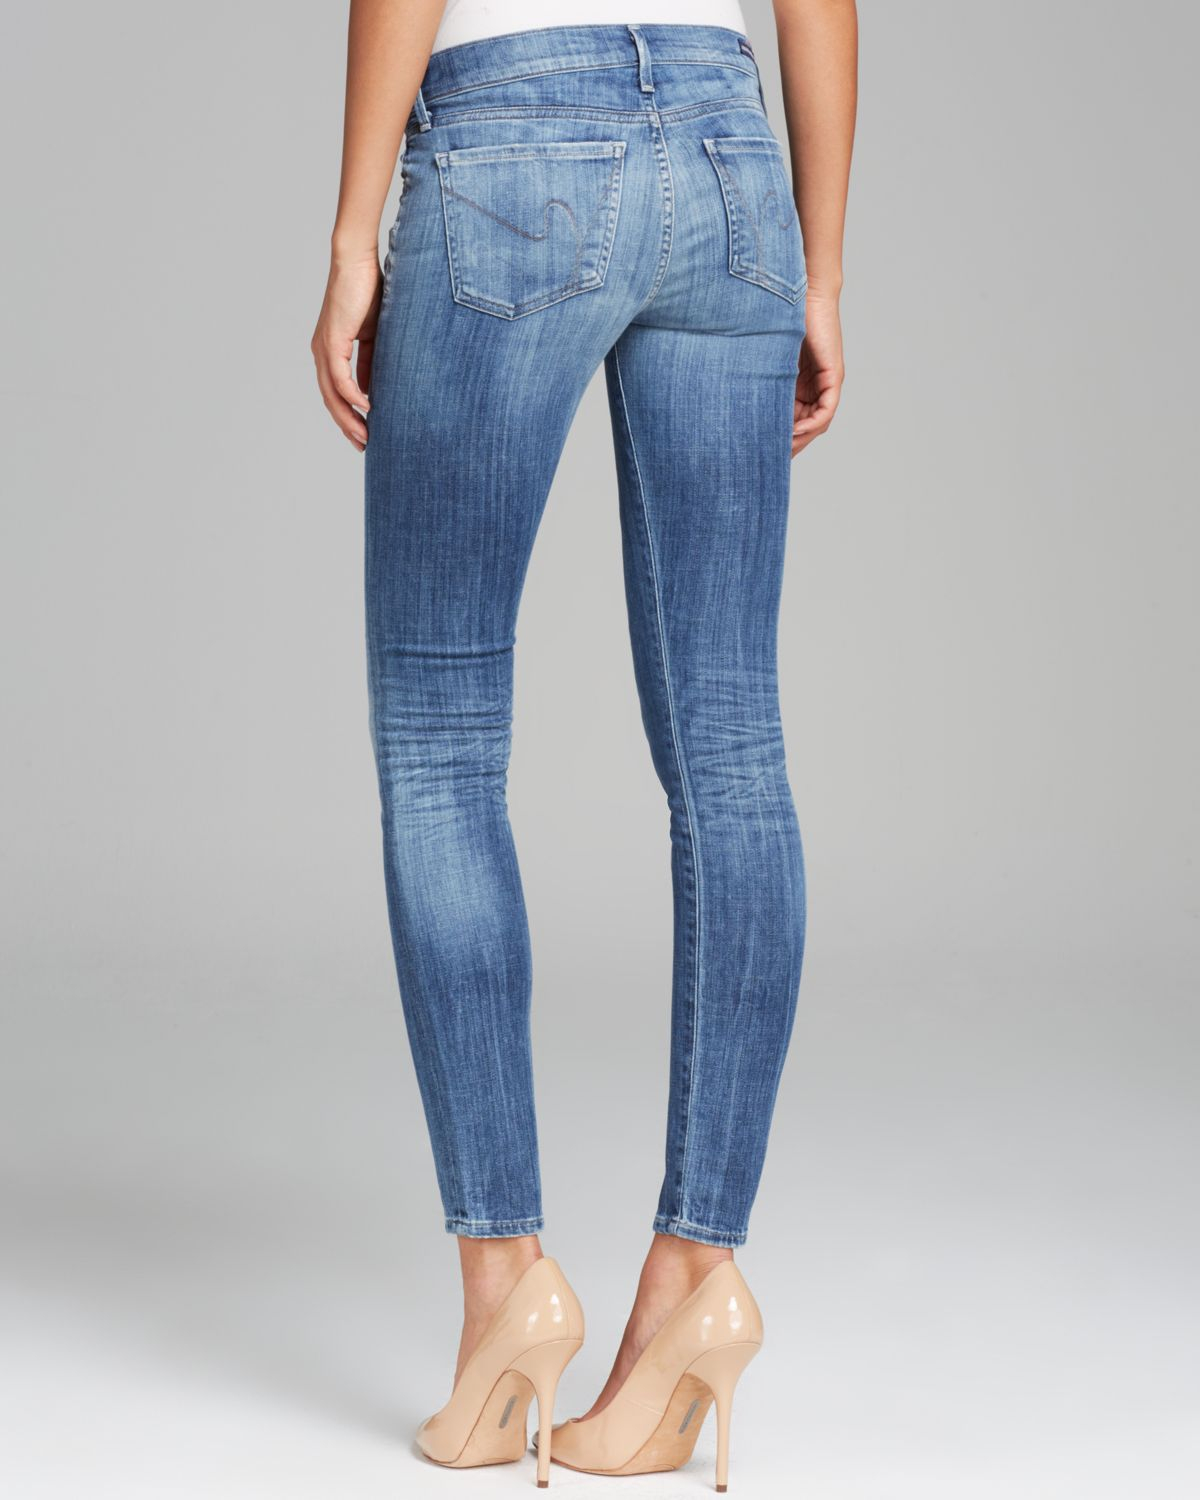 Lyst - Citizens Of Humanity Jeans - Avedon Ultra Skinny In Montauk in Blue